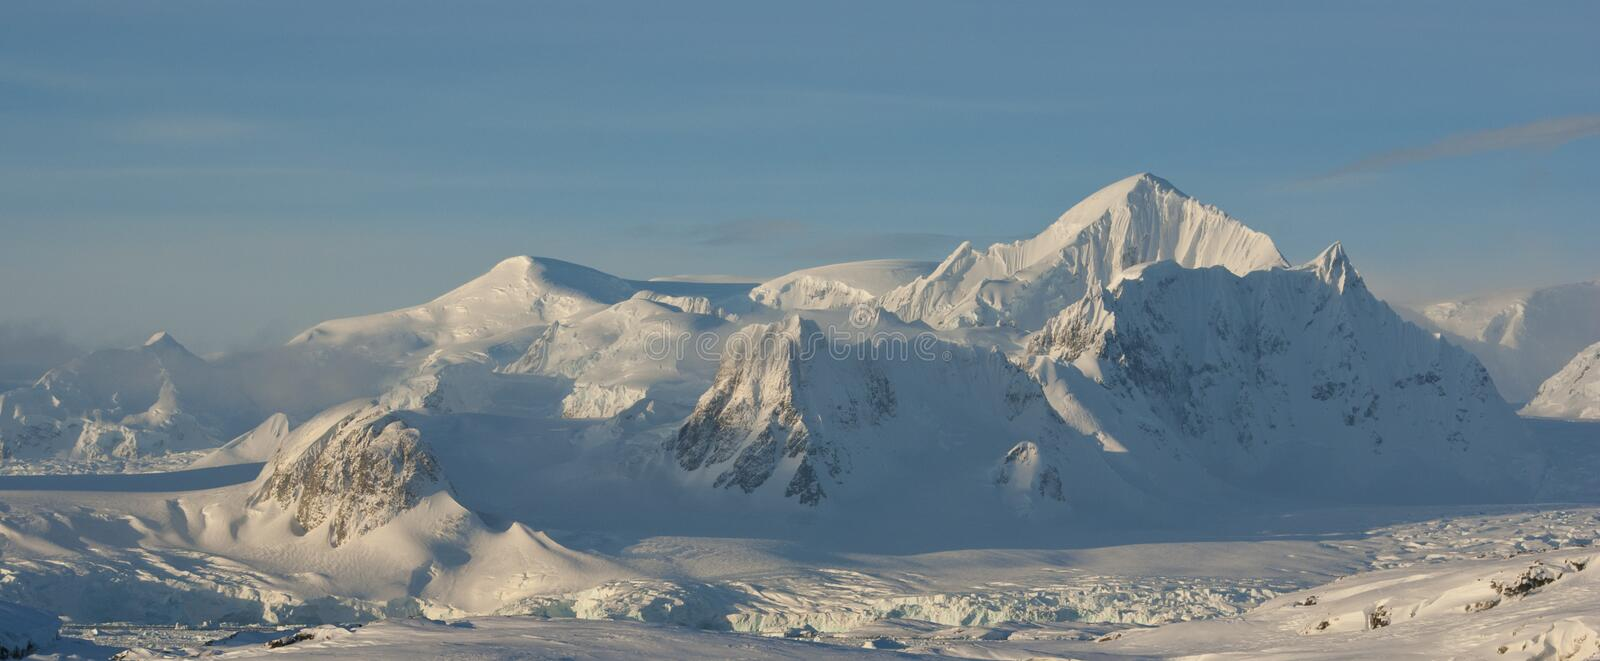 Download The Mountains Of The Antarctic Winter. Stock Image - Image: 23443333